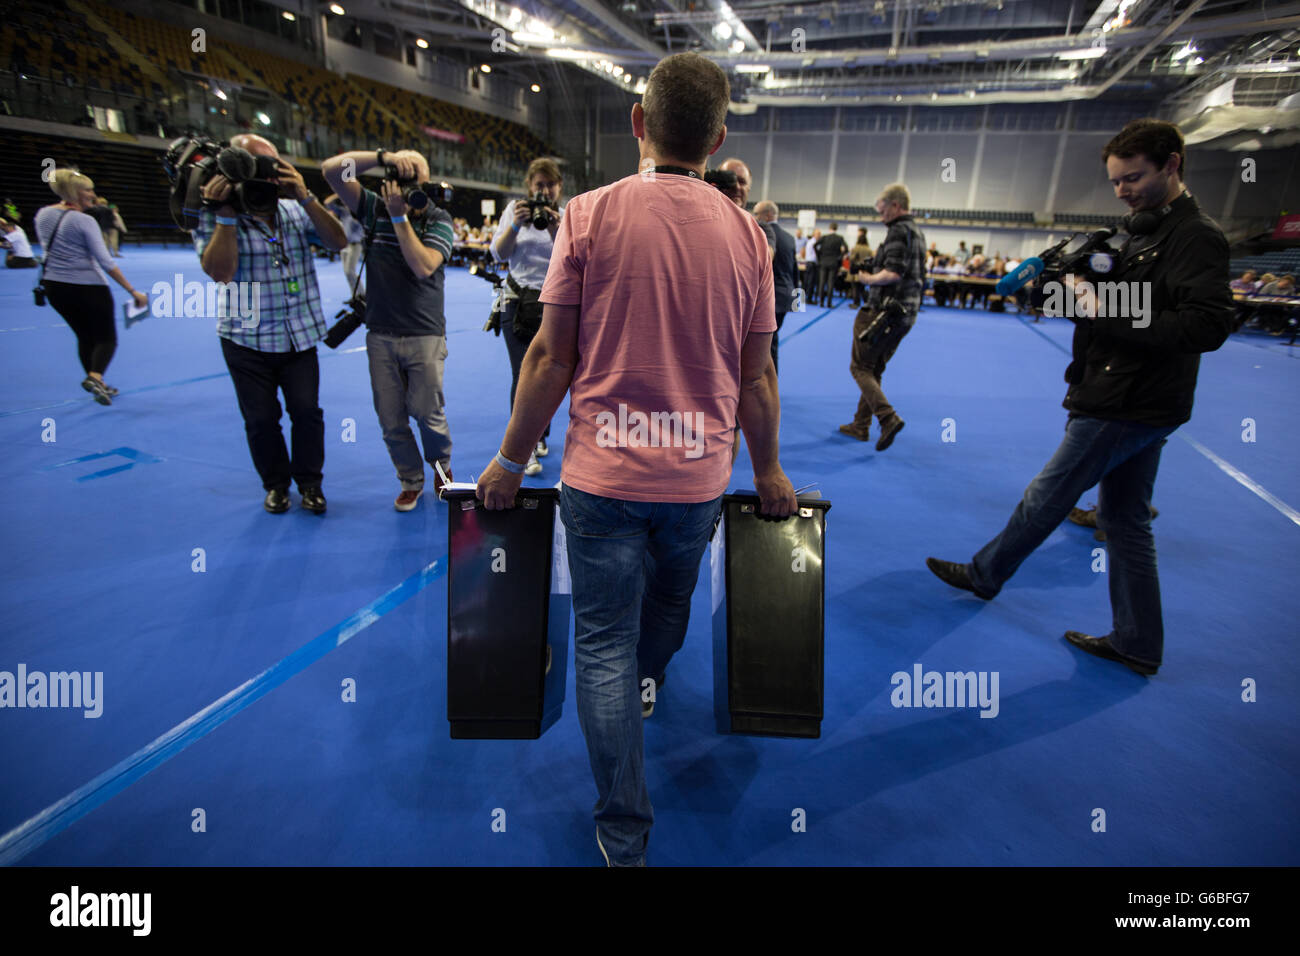 Glasgow, UK. 23rd June, 2016. The ballot boxes containing the votes arrive in the Emirates Arena to begin the count - Stock Image